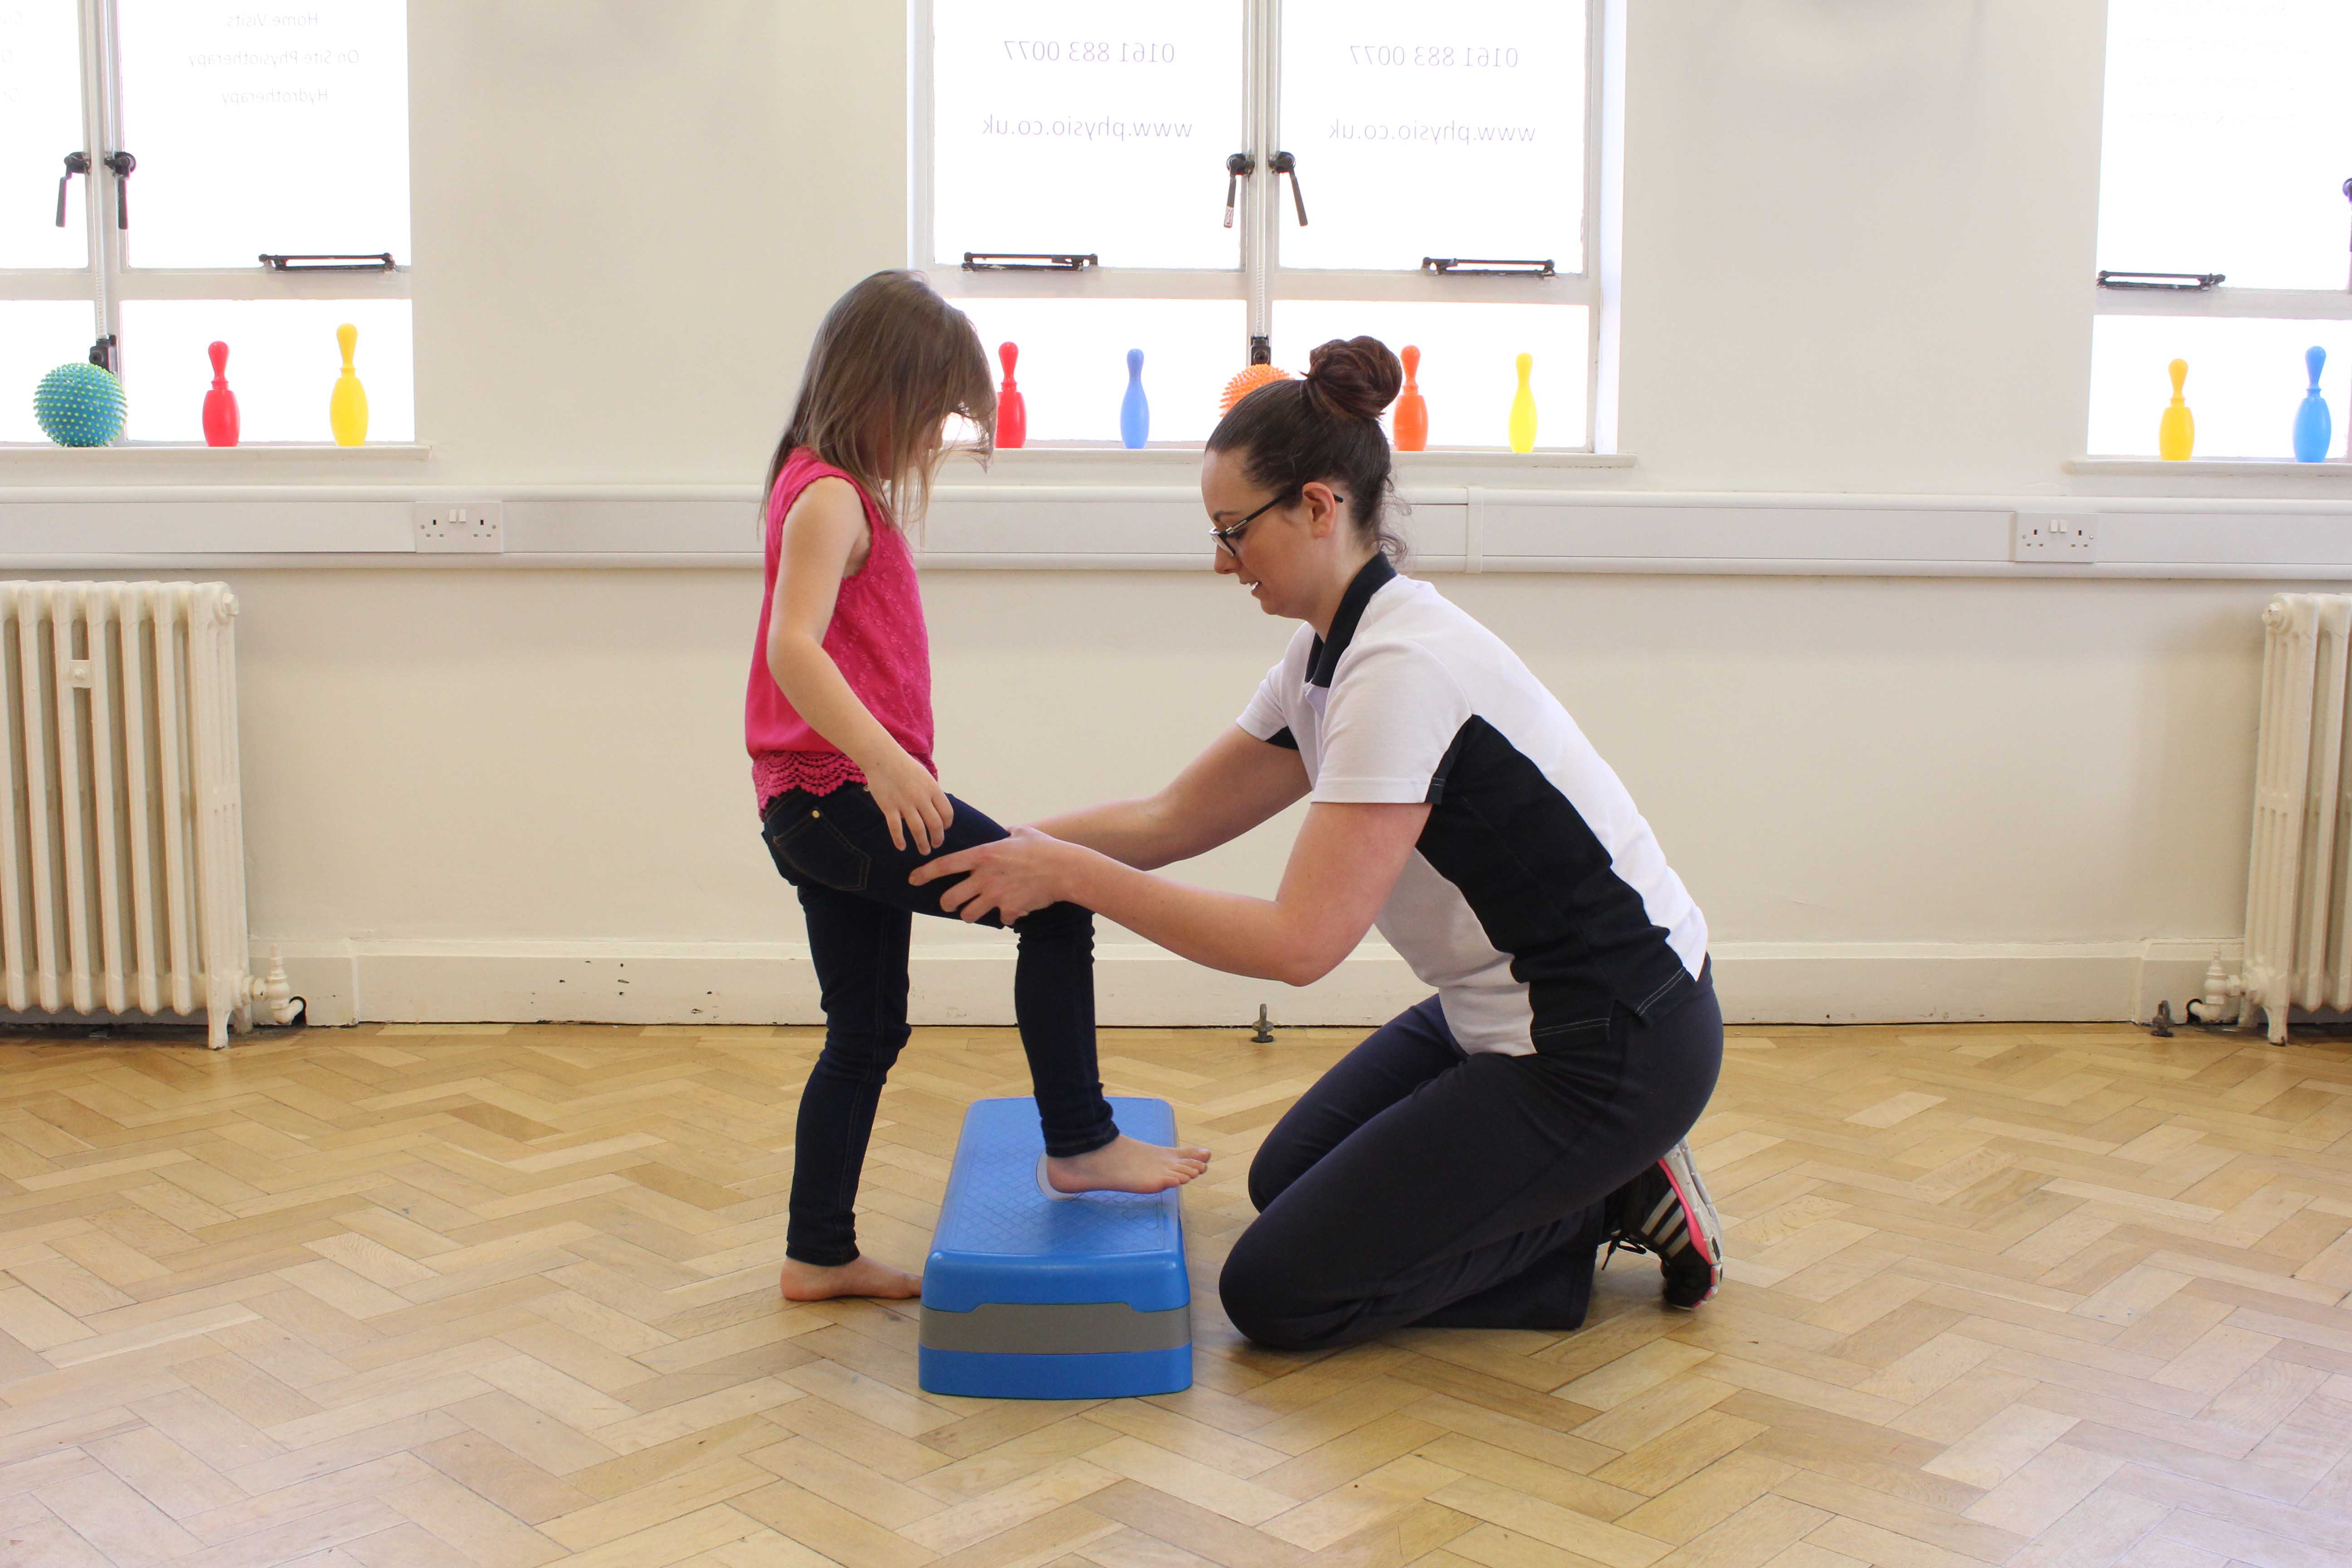 Functional mobility exercises assisted by a paediatric neuro physiotherapist